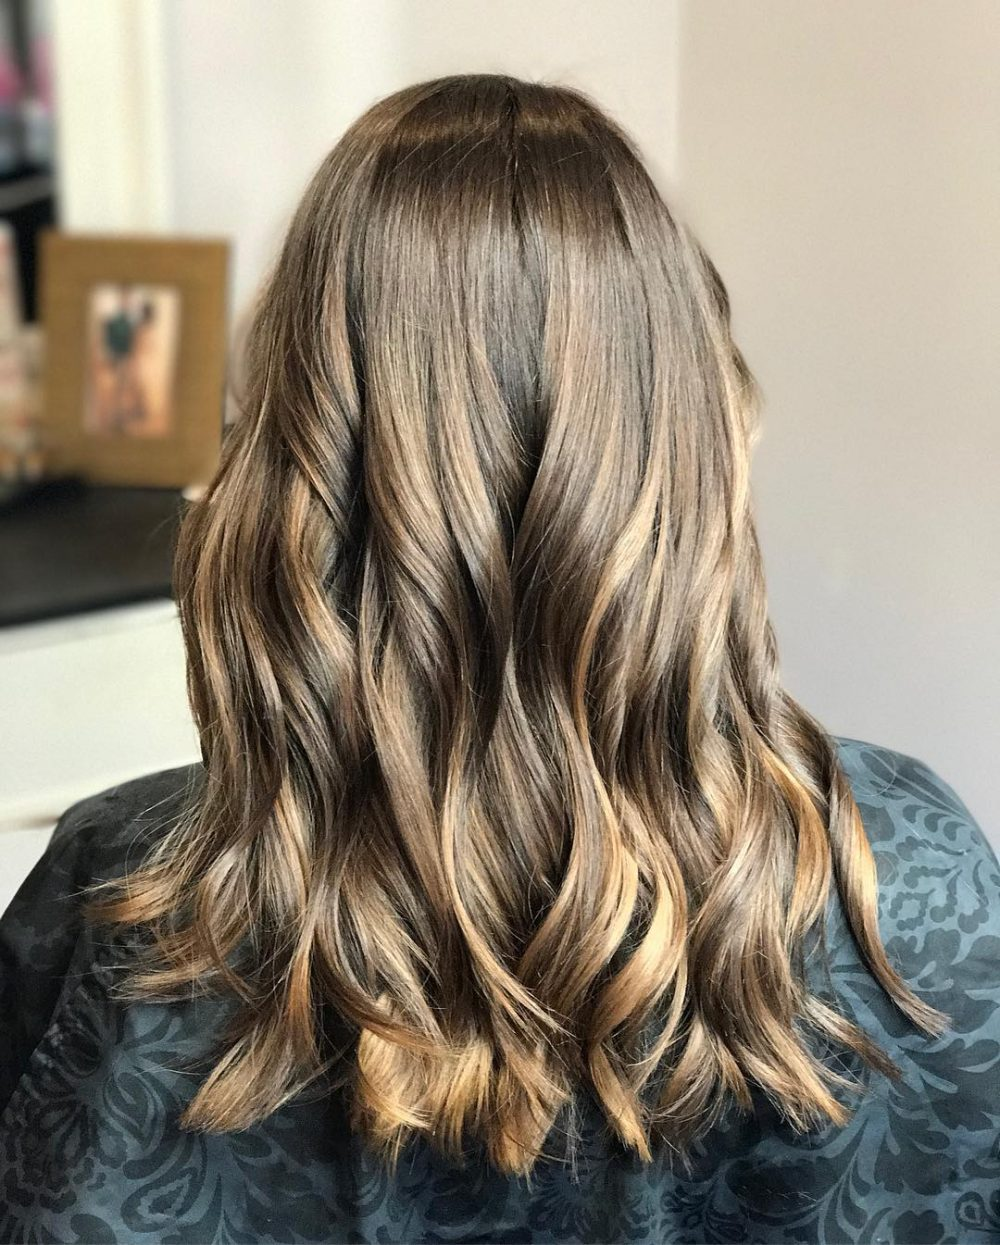 Best Caramel Highlights On Dark Brown Hair At Home Image Collection